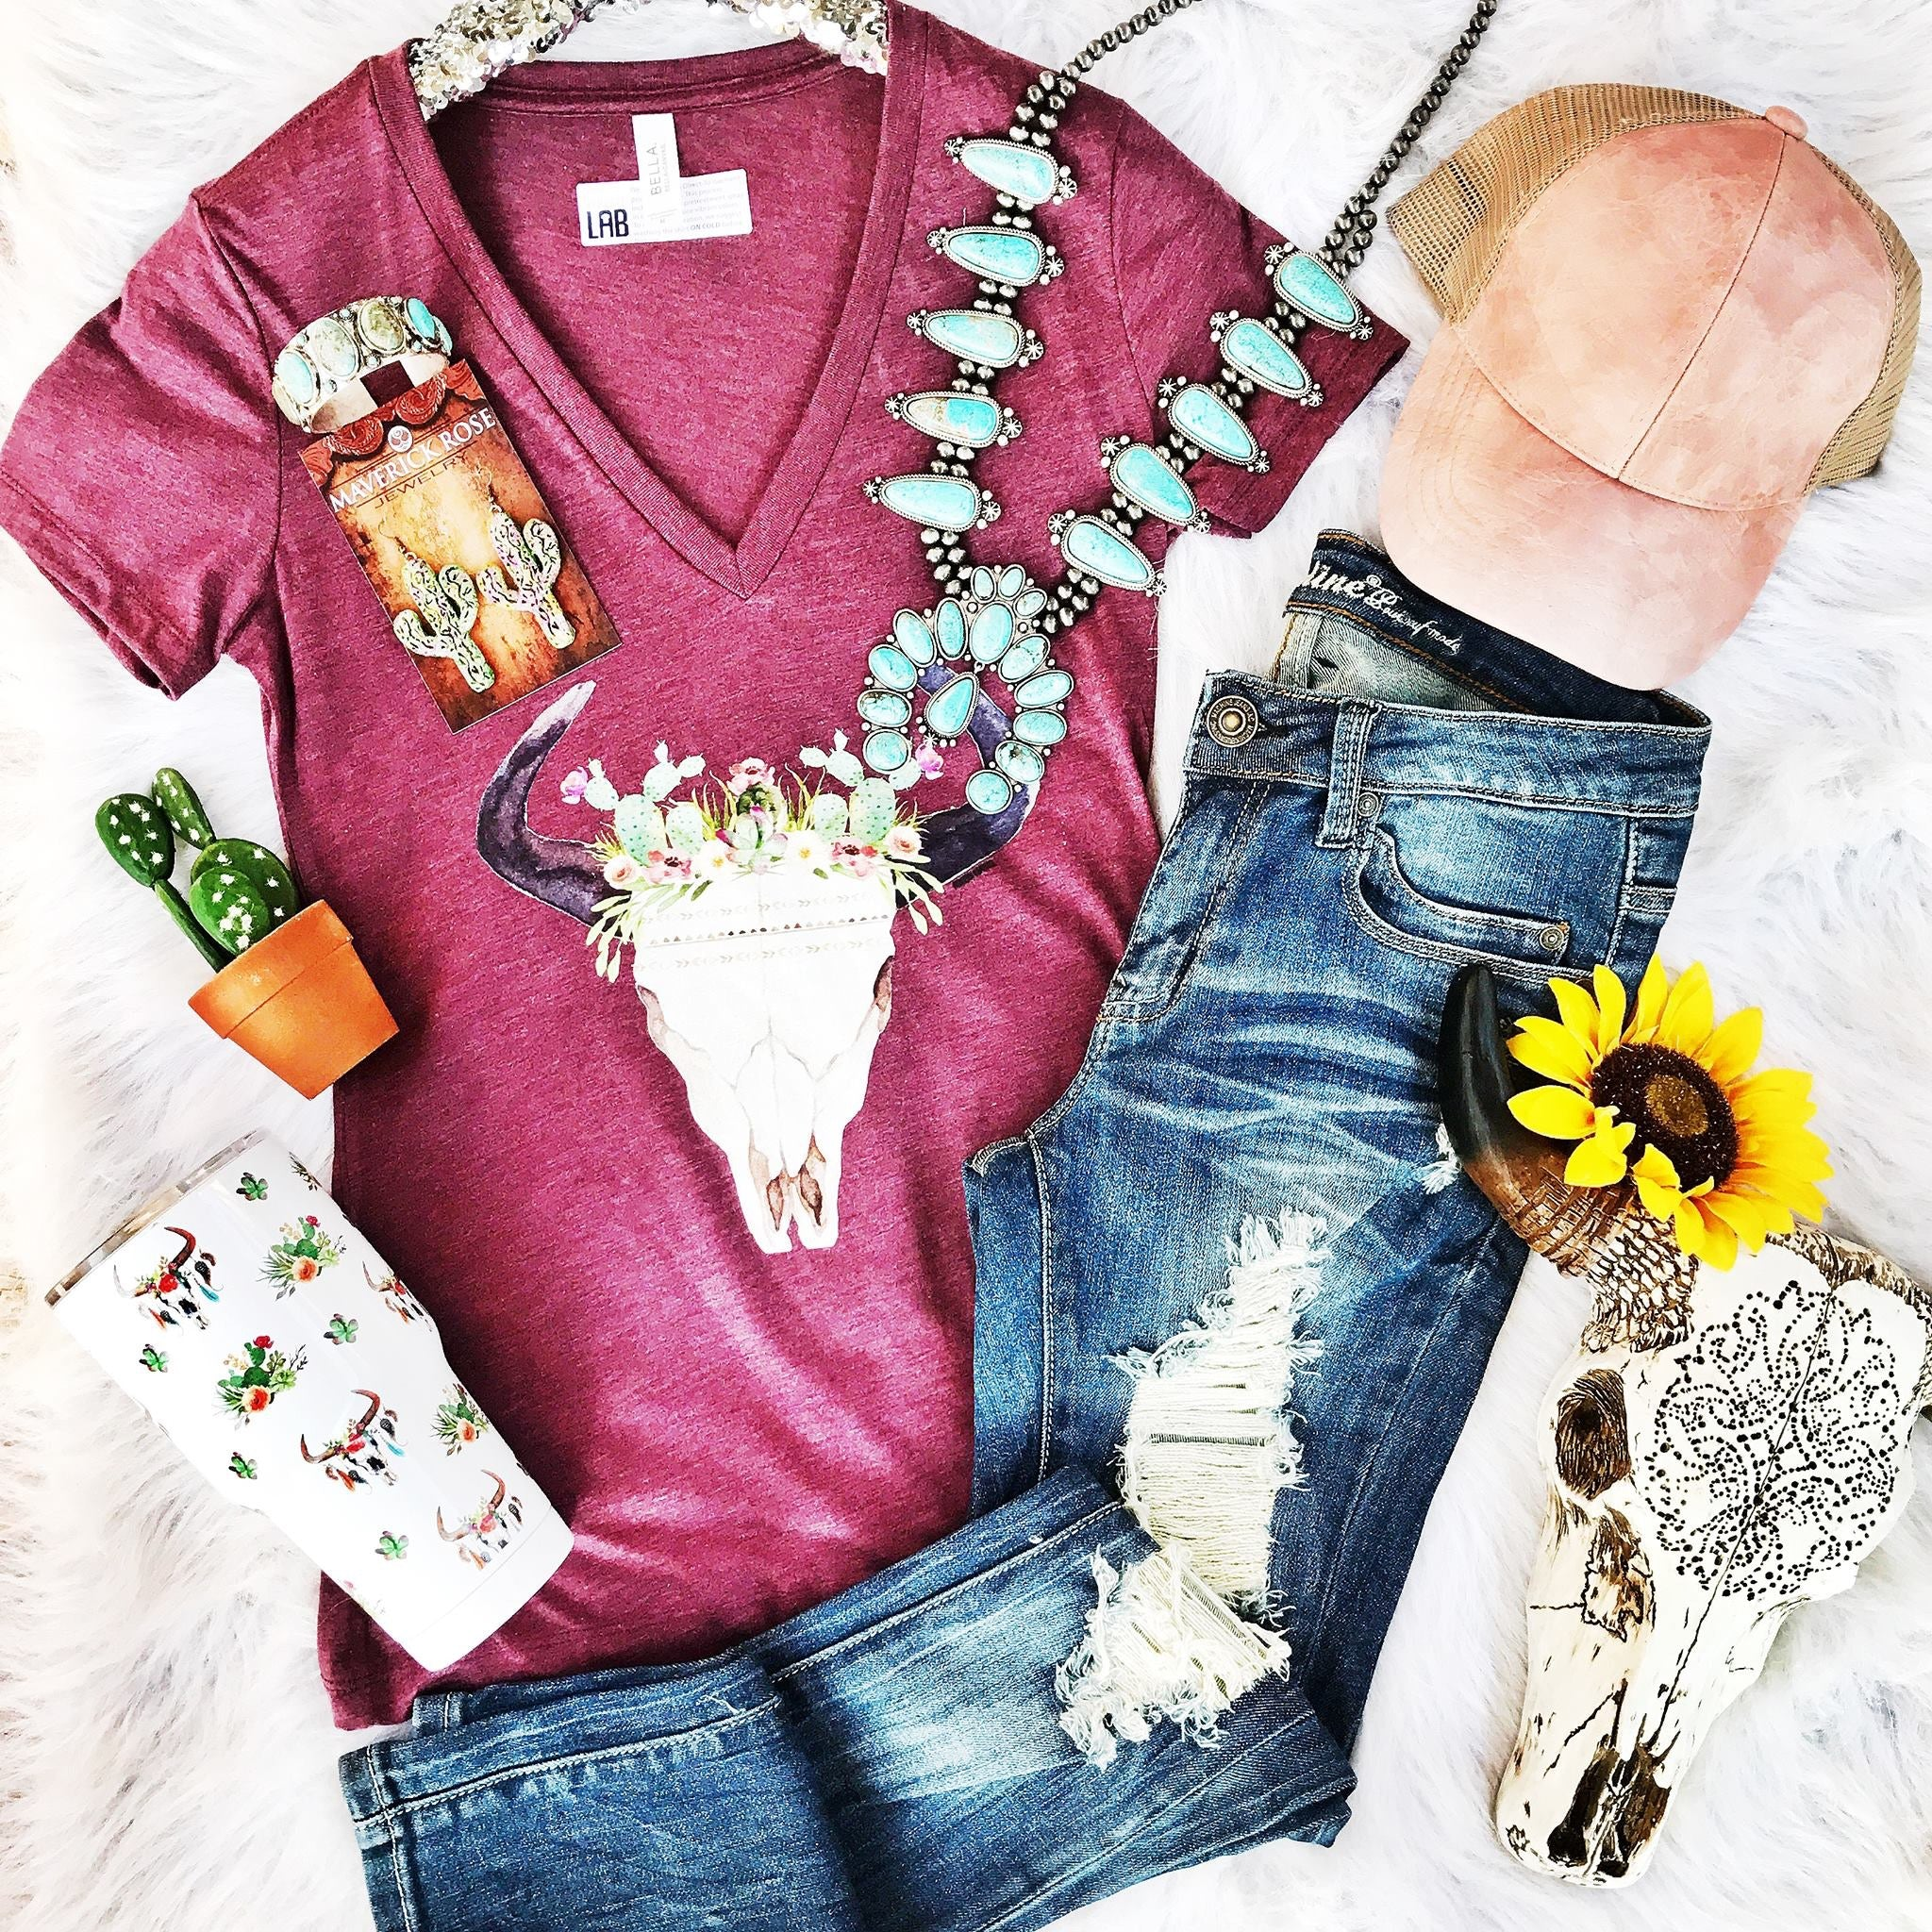 Maroon Bullhead Tee - Ruby Rue Jewelry & Accessories